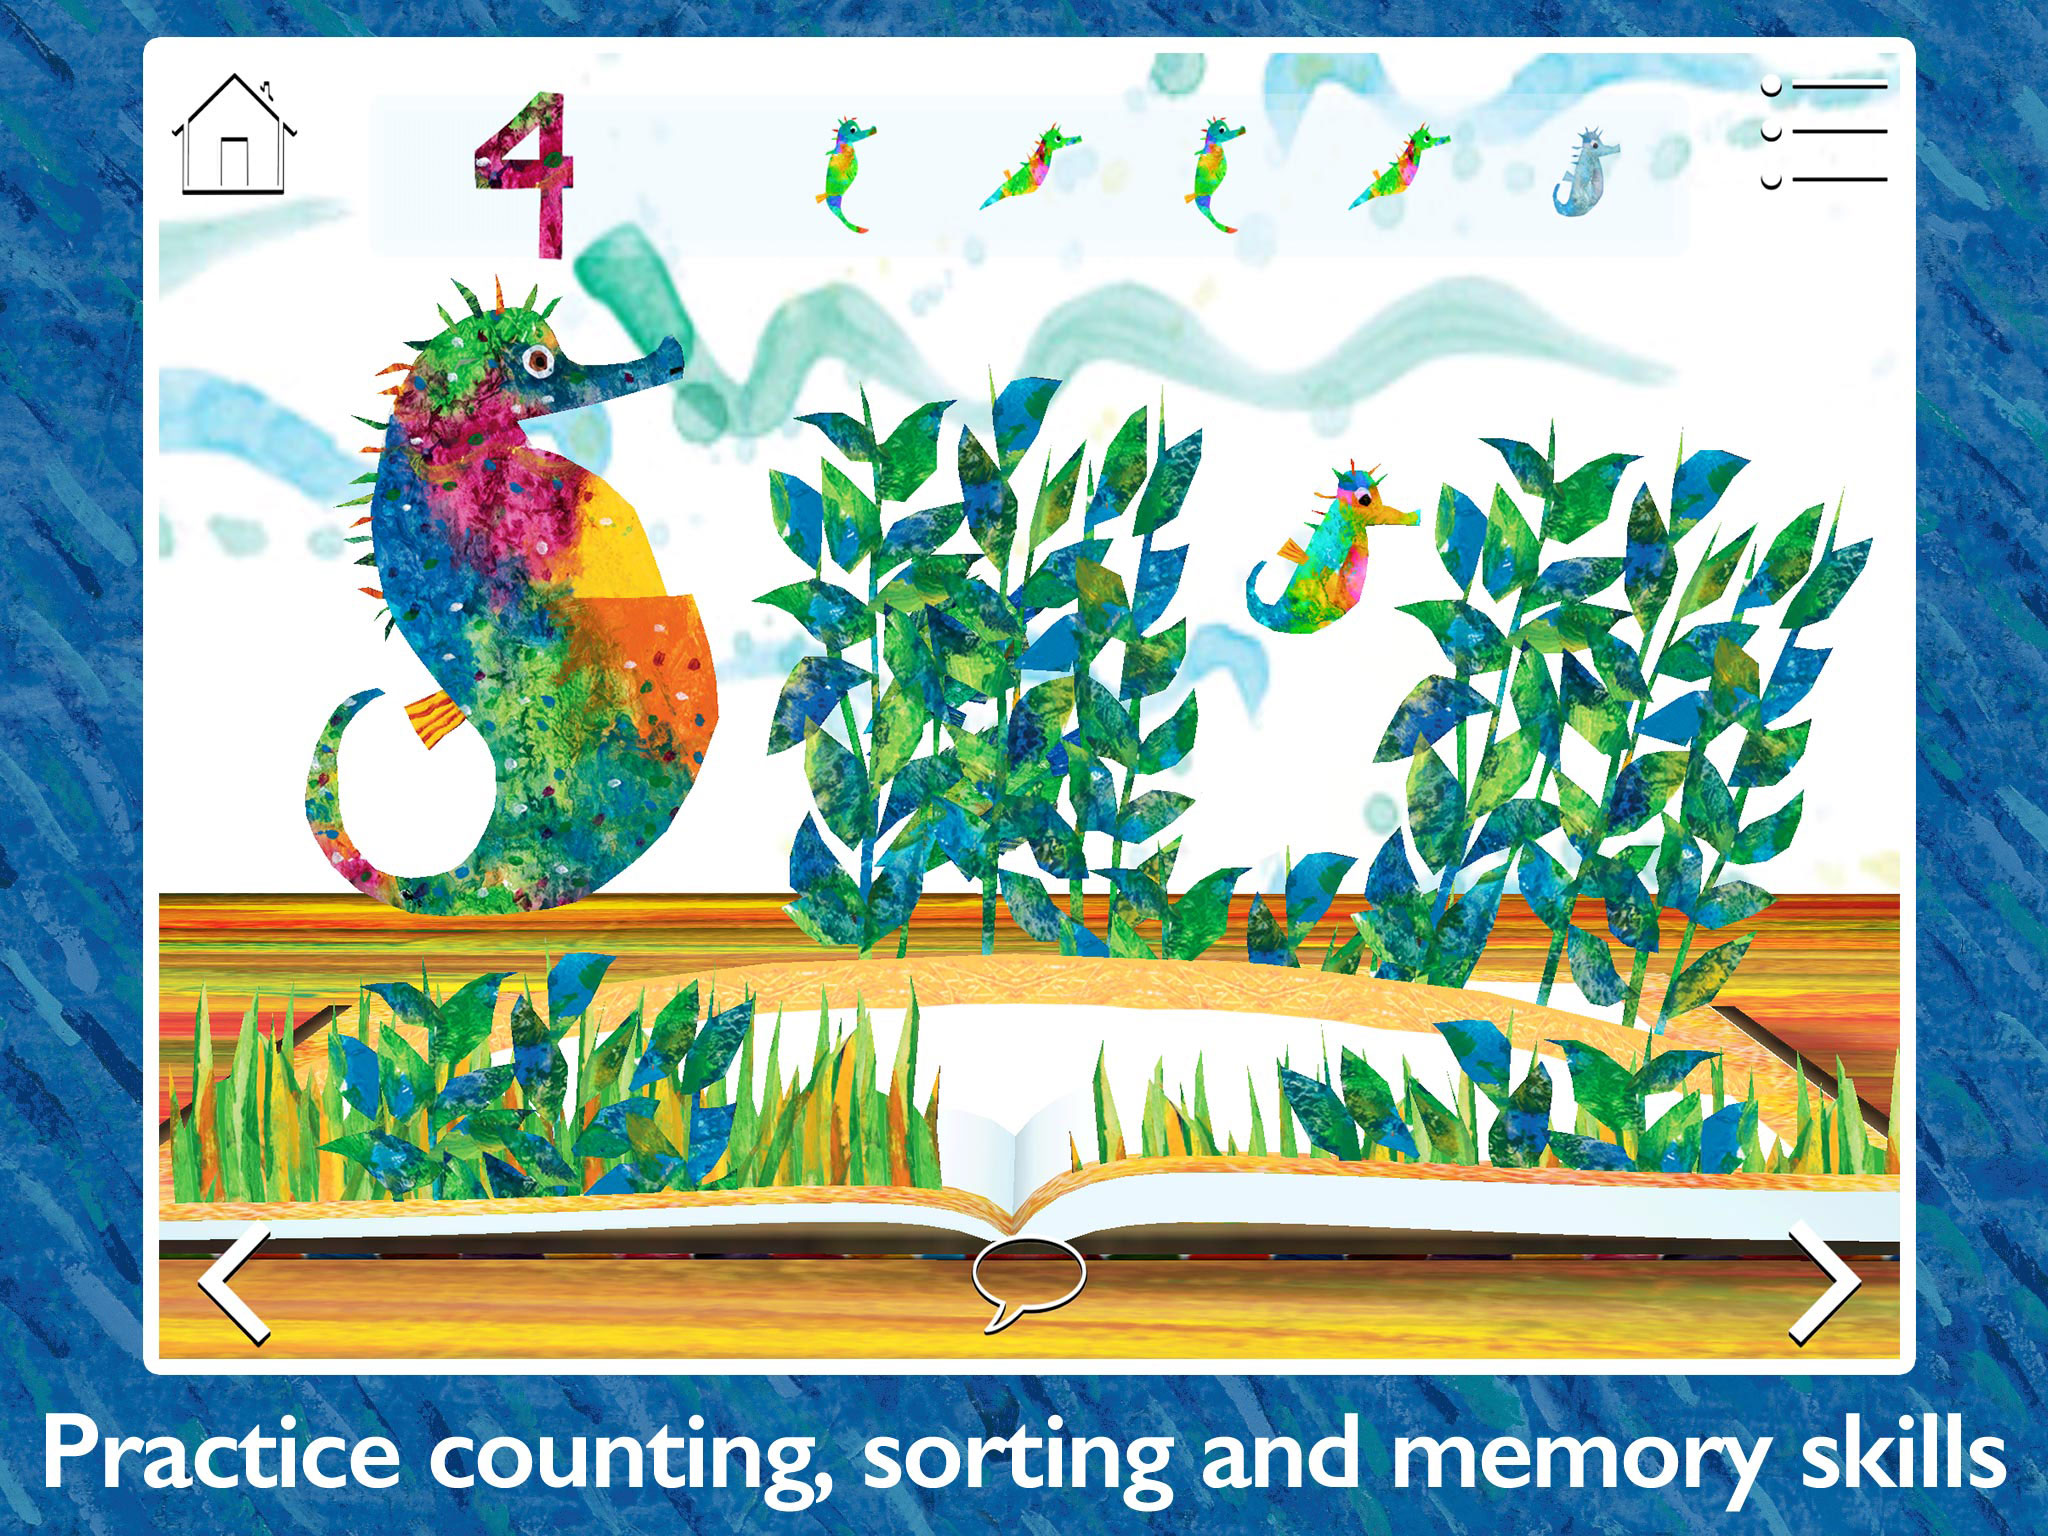 The Very Hungry Caterpillar & Friends - Play & Exploreapp for children by StoryToys. Play and explore with The Very Hungry Caterpillar and other much-loved characters created by Eric Carle. Practice counting, sorting and memory skills.